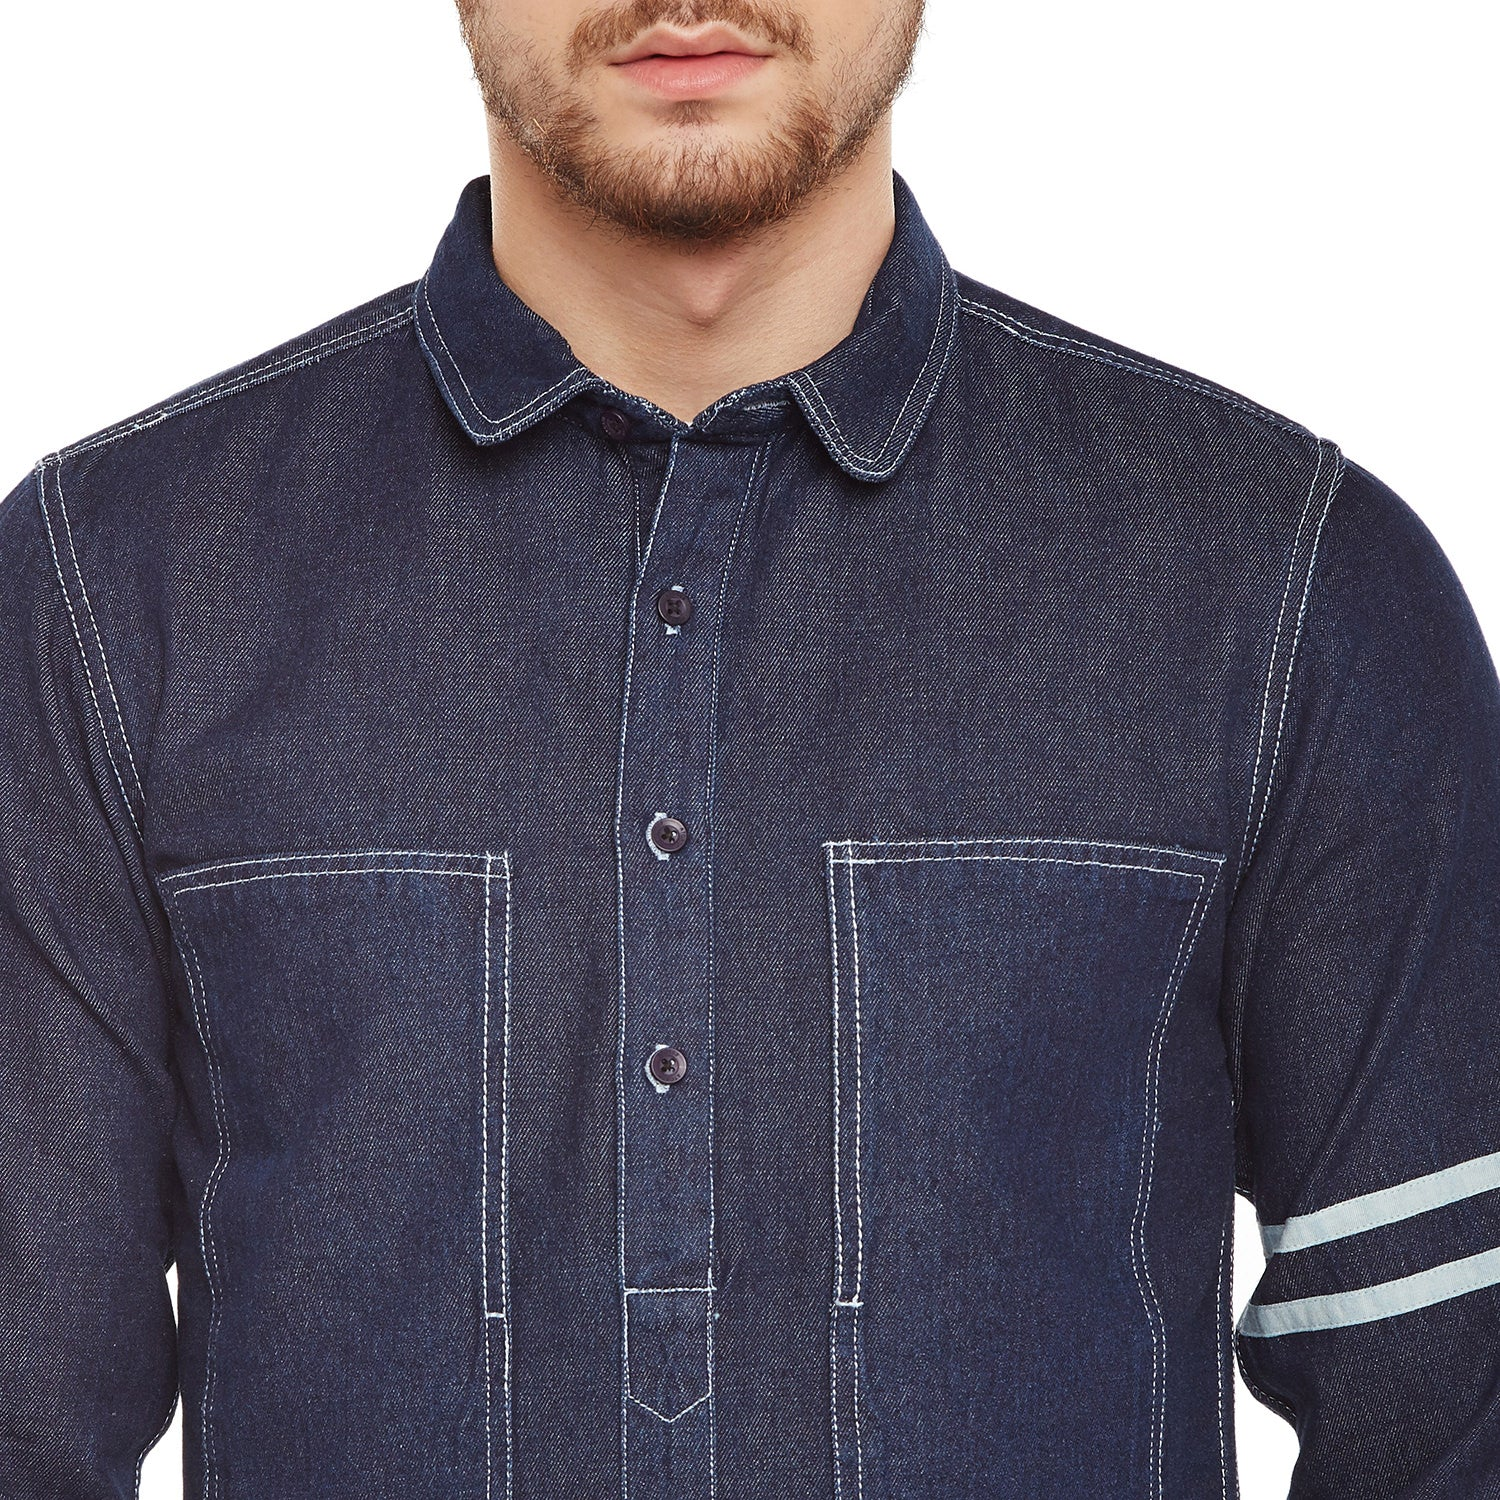 Atorse Mens Long Placket And Sleeves With Thick Cotton Tape Detail